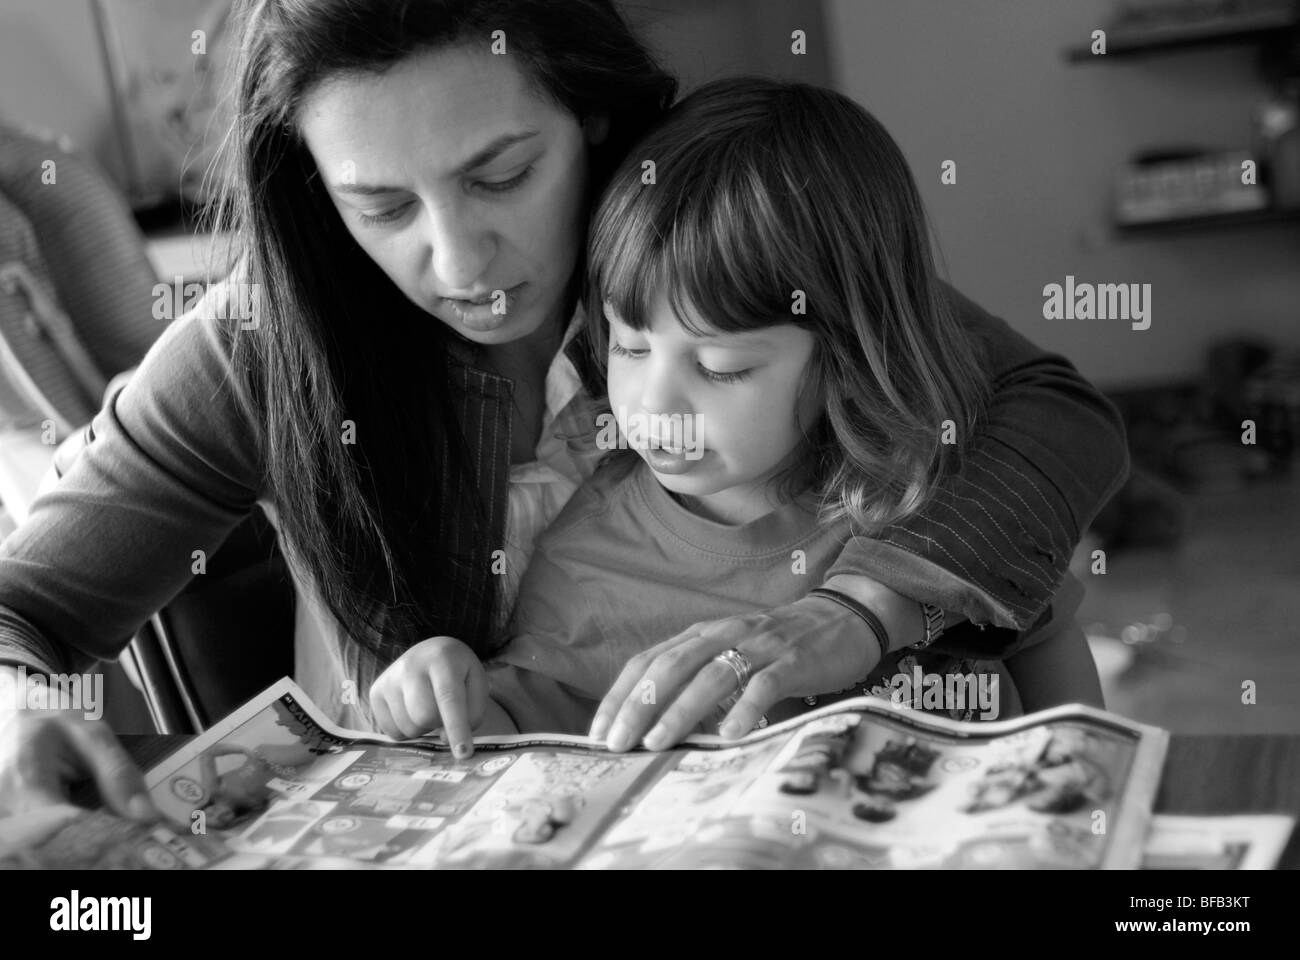 Mother and young daughter, three years old, looking in shopping brochures together. - Stock Image